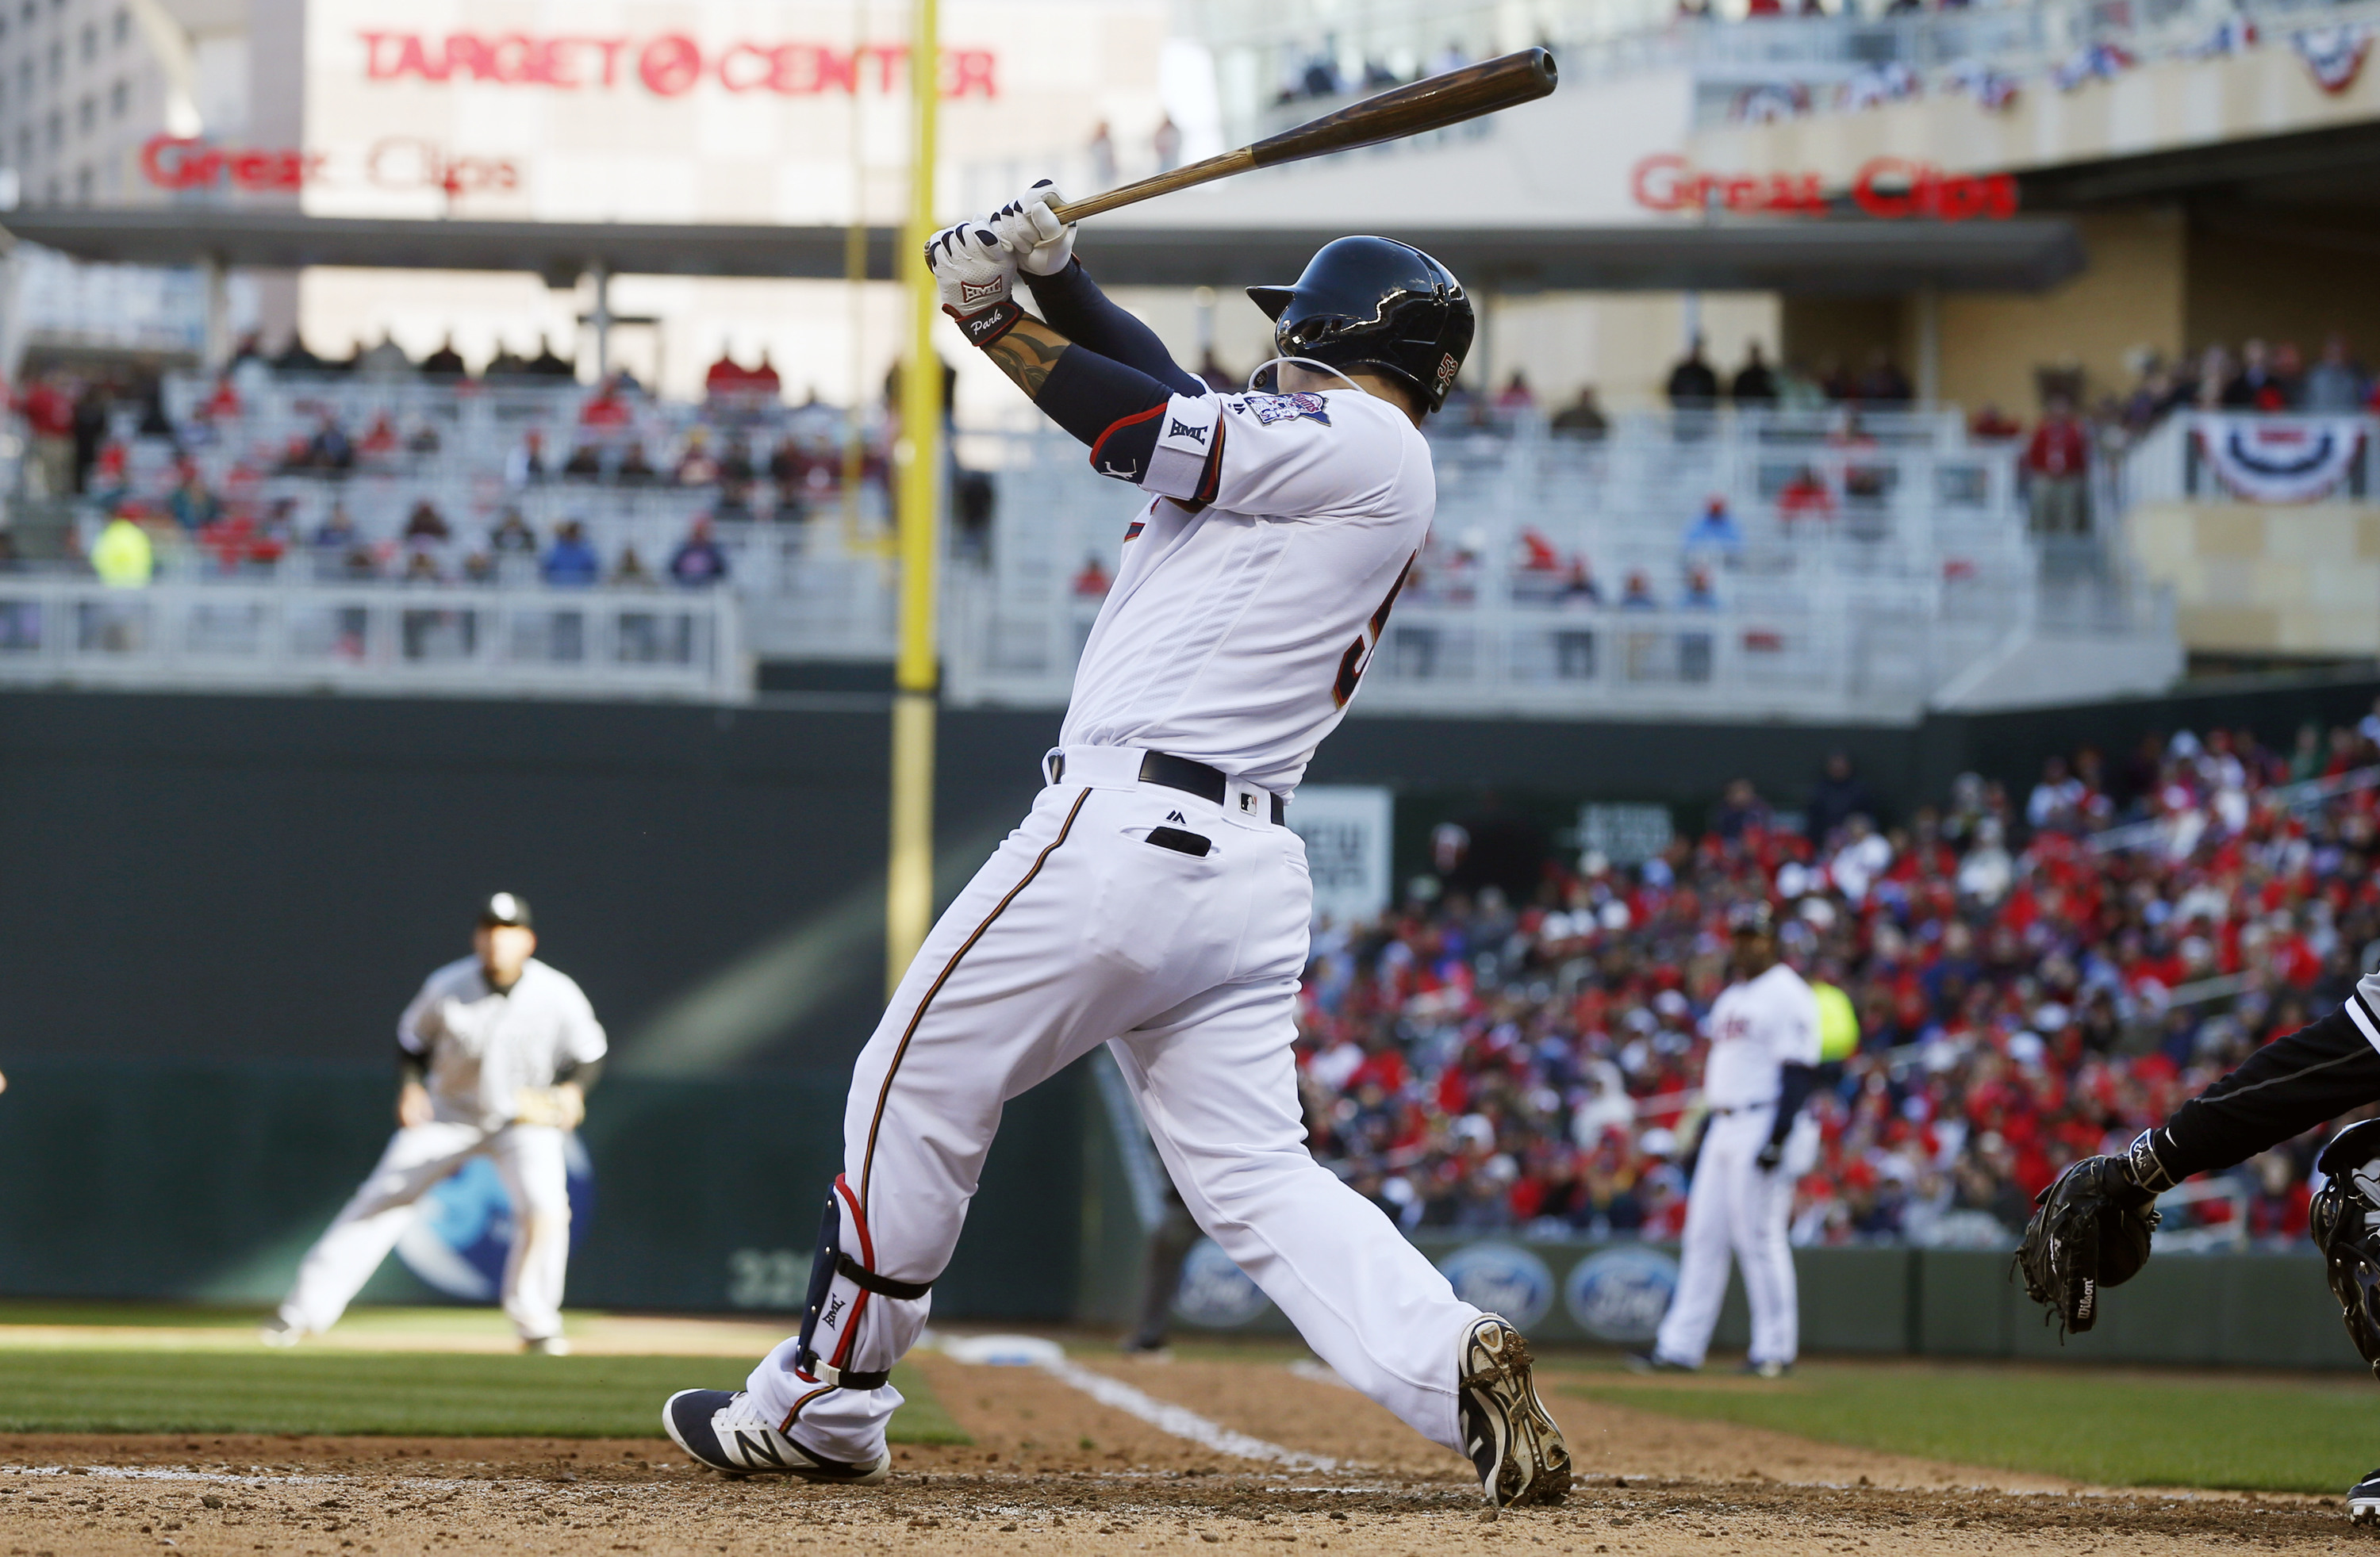 In this April 11, 2016 photo, Minnesota Twins' Byung Ho Park of South Korea swings the bat in a baseball game against the Chicago White Sox in Minneapolis. The Twins are the only winless team left in the American League, off to the franchise's worst start